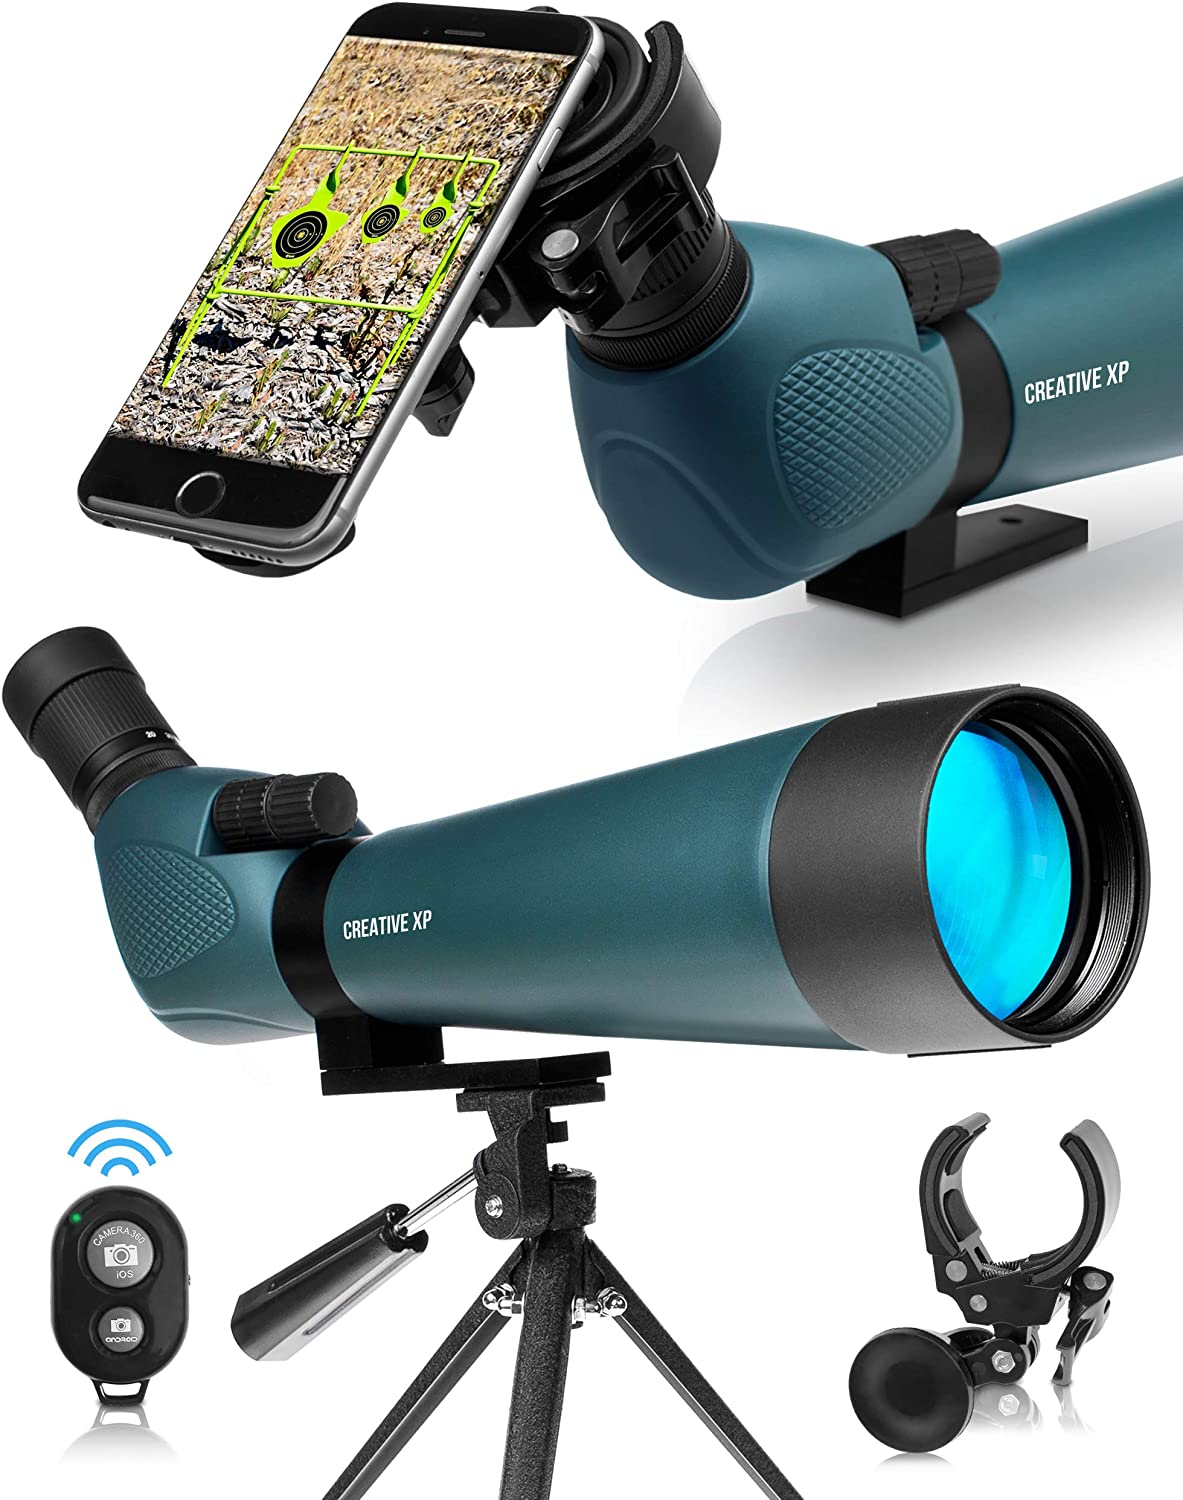 Top 9 Best Spotting Scopes For Wildlife Viewing [Buying Guide - 2021] 9